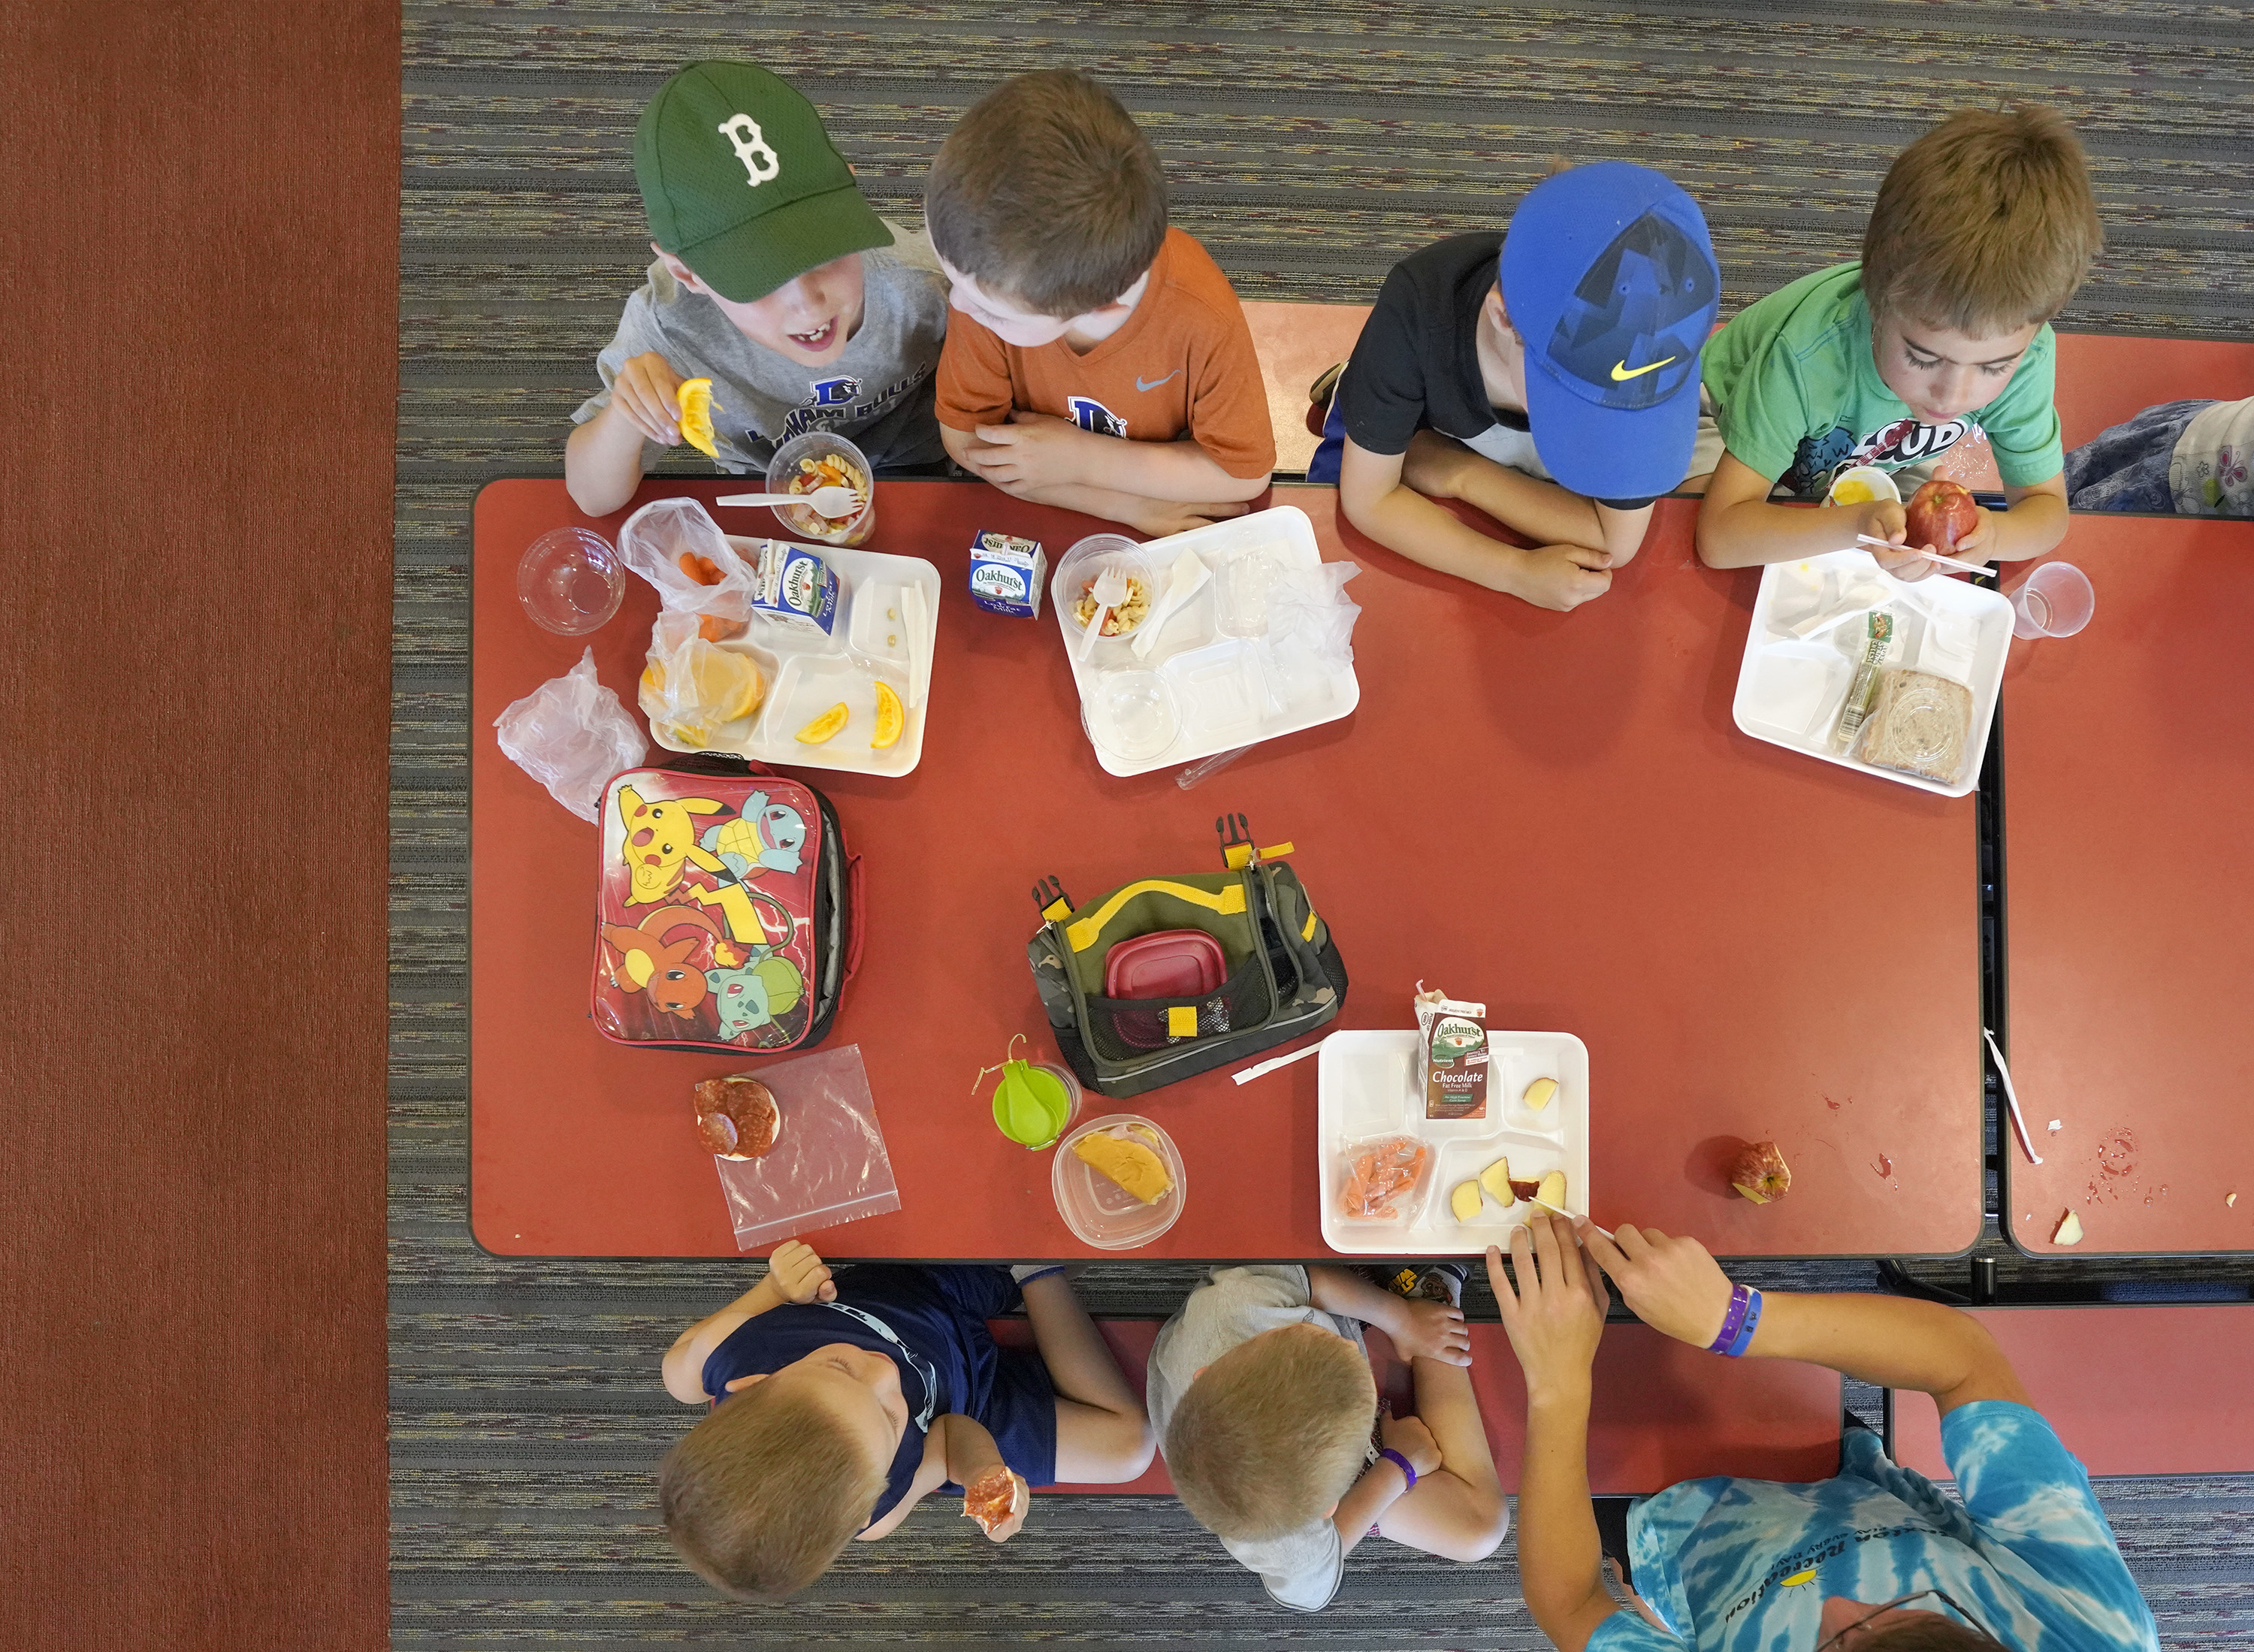 Wear a wristband if you can t pay for lunch? The dilemma of school lunch shaming.